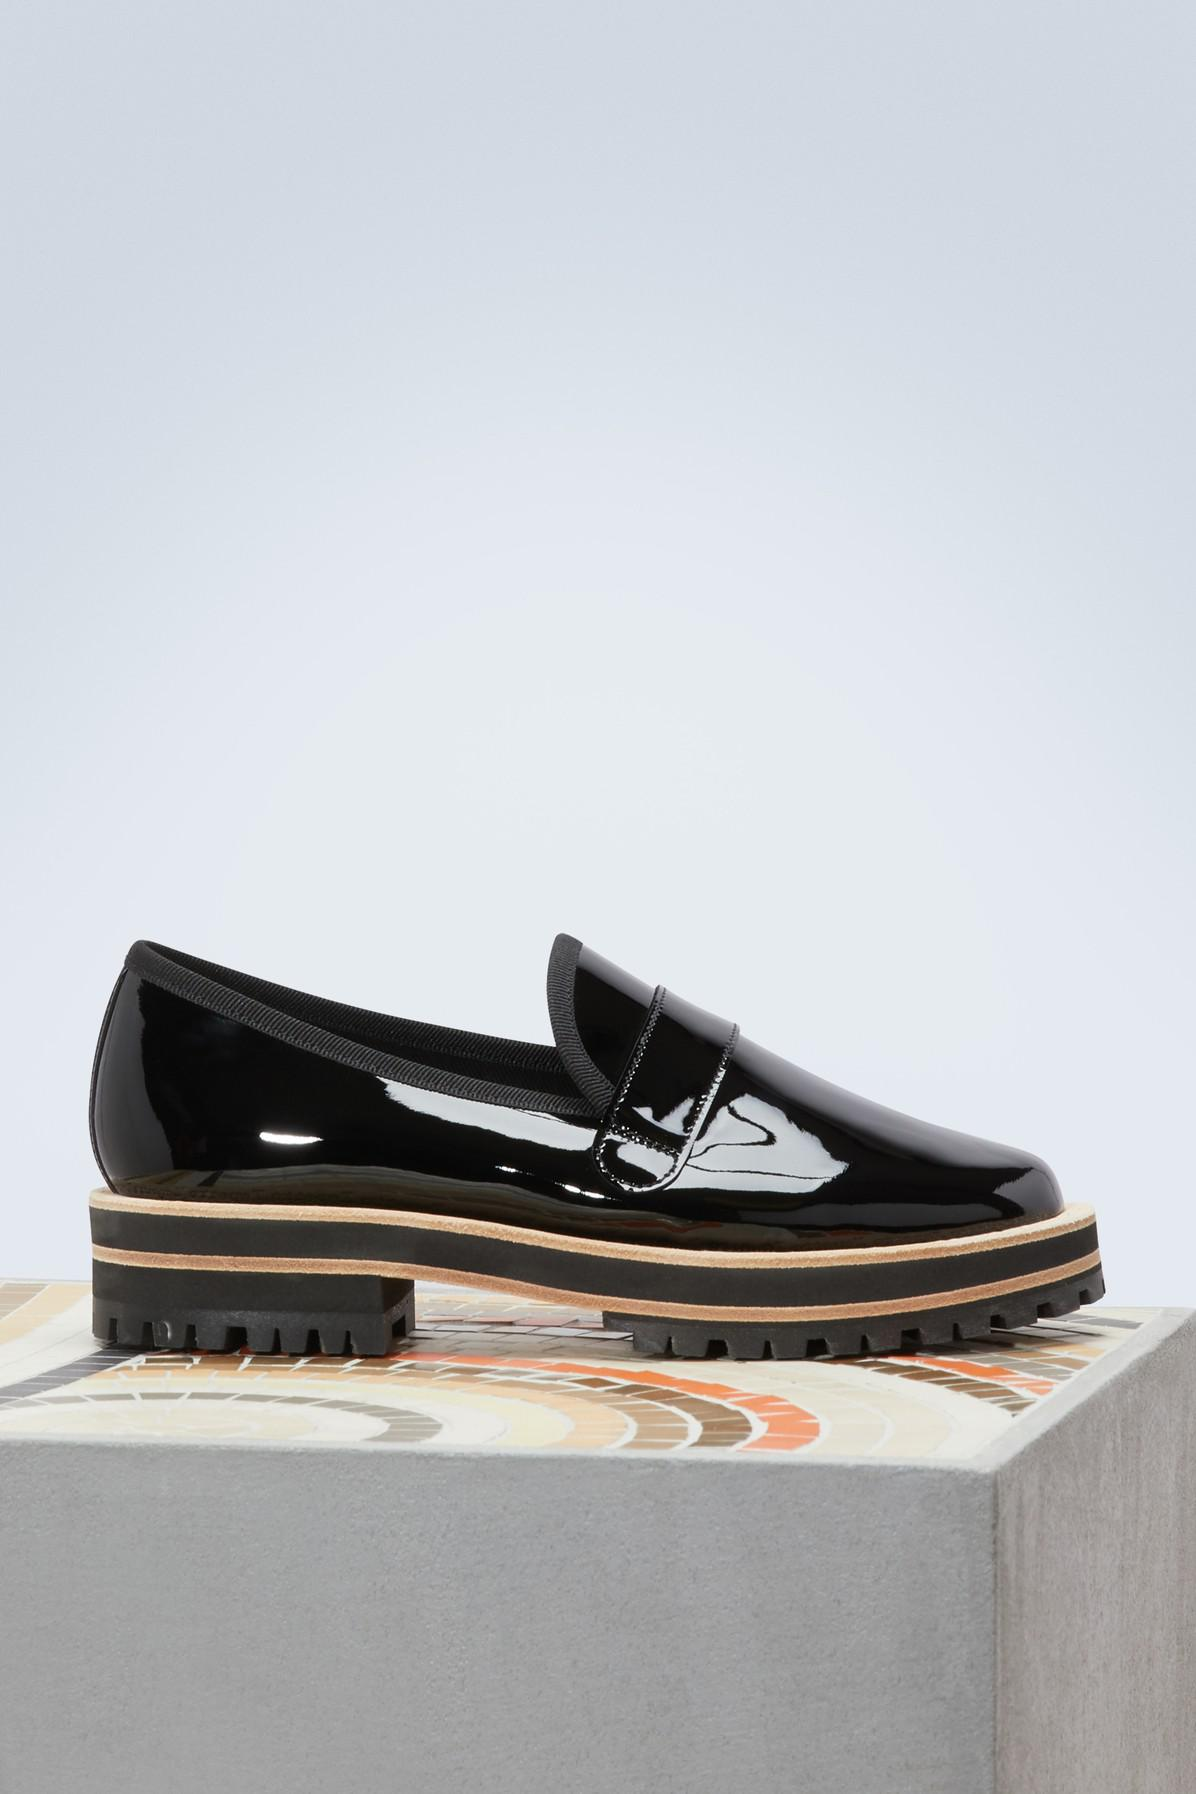 Repetto Gaylor patent leather loafers free shipping ebay sale high quality wCVnXcLztA